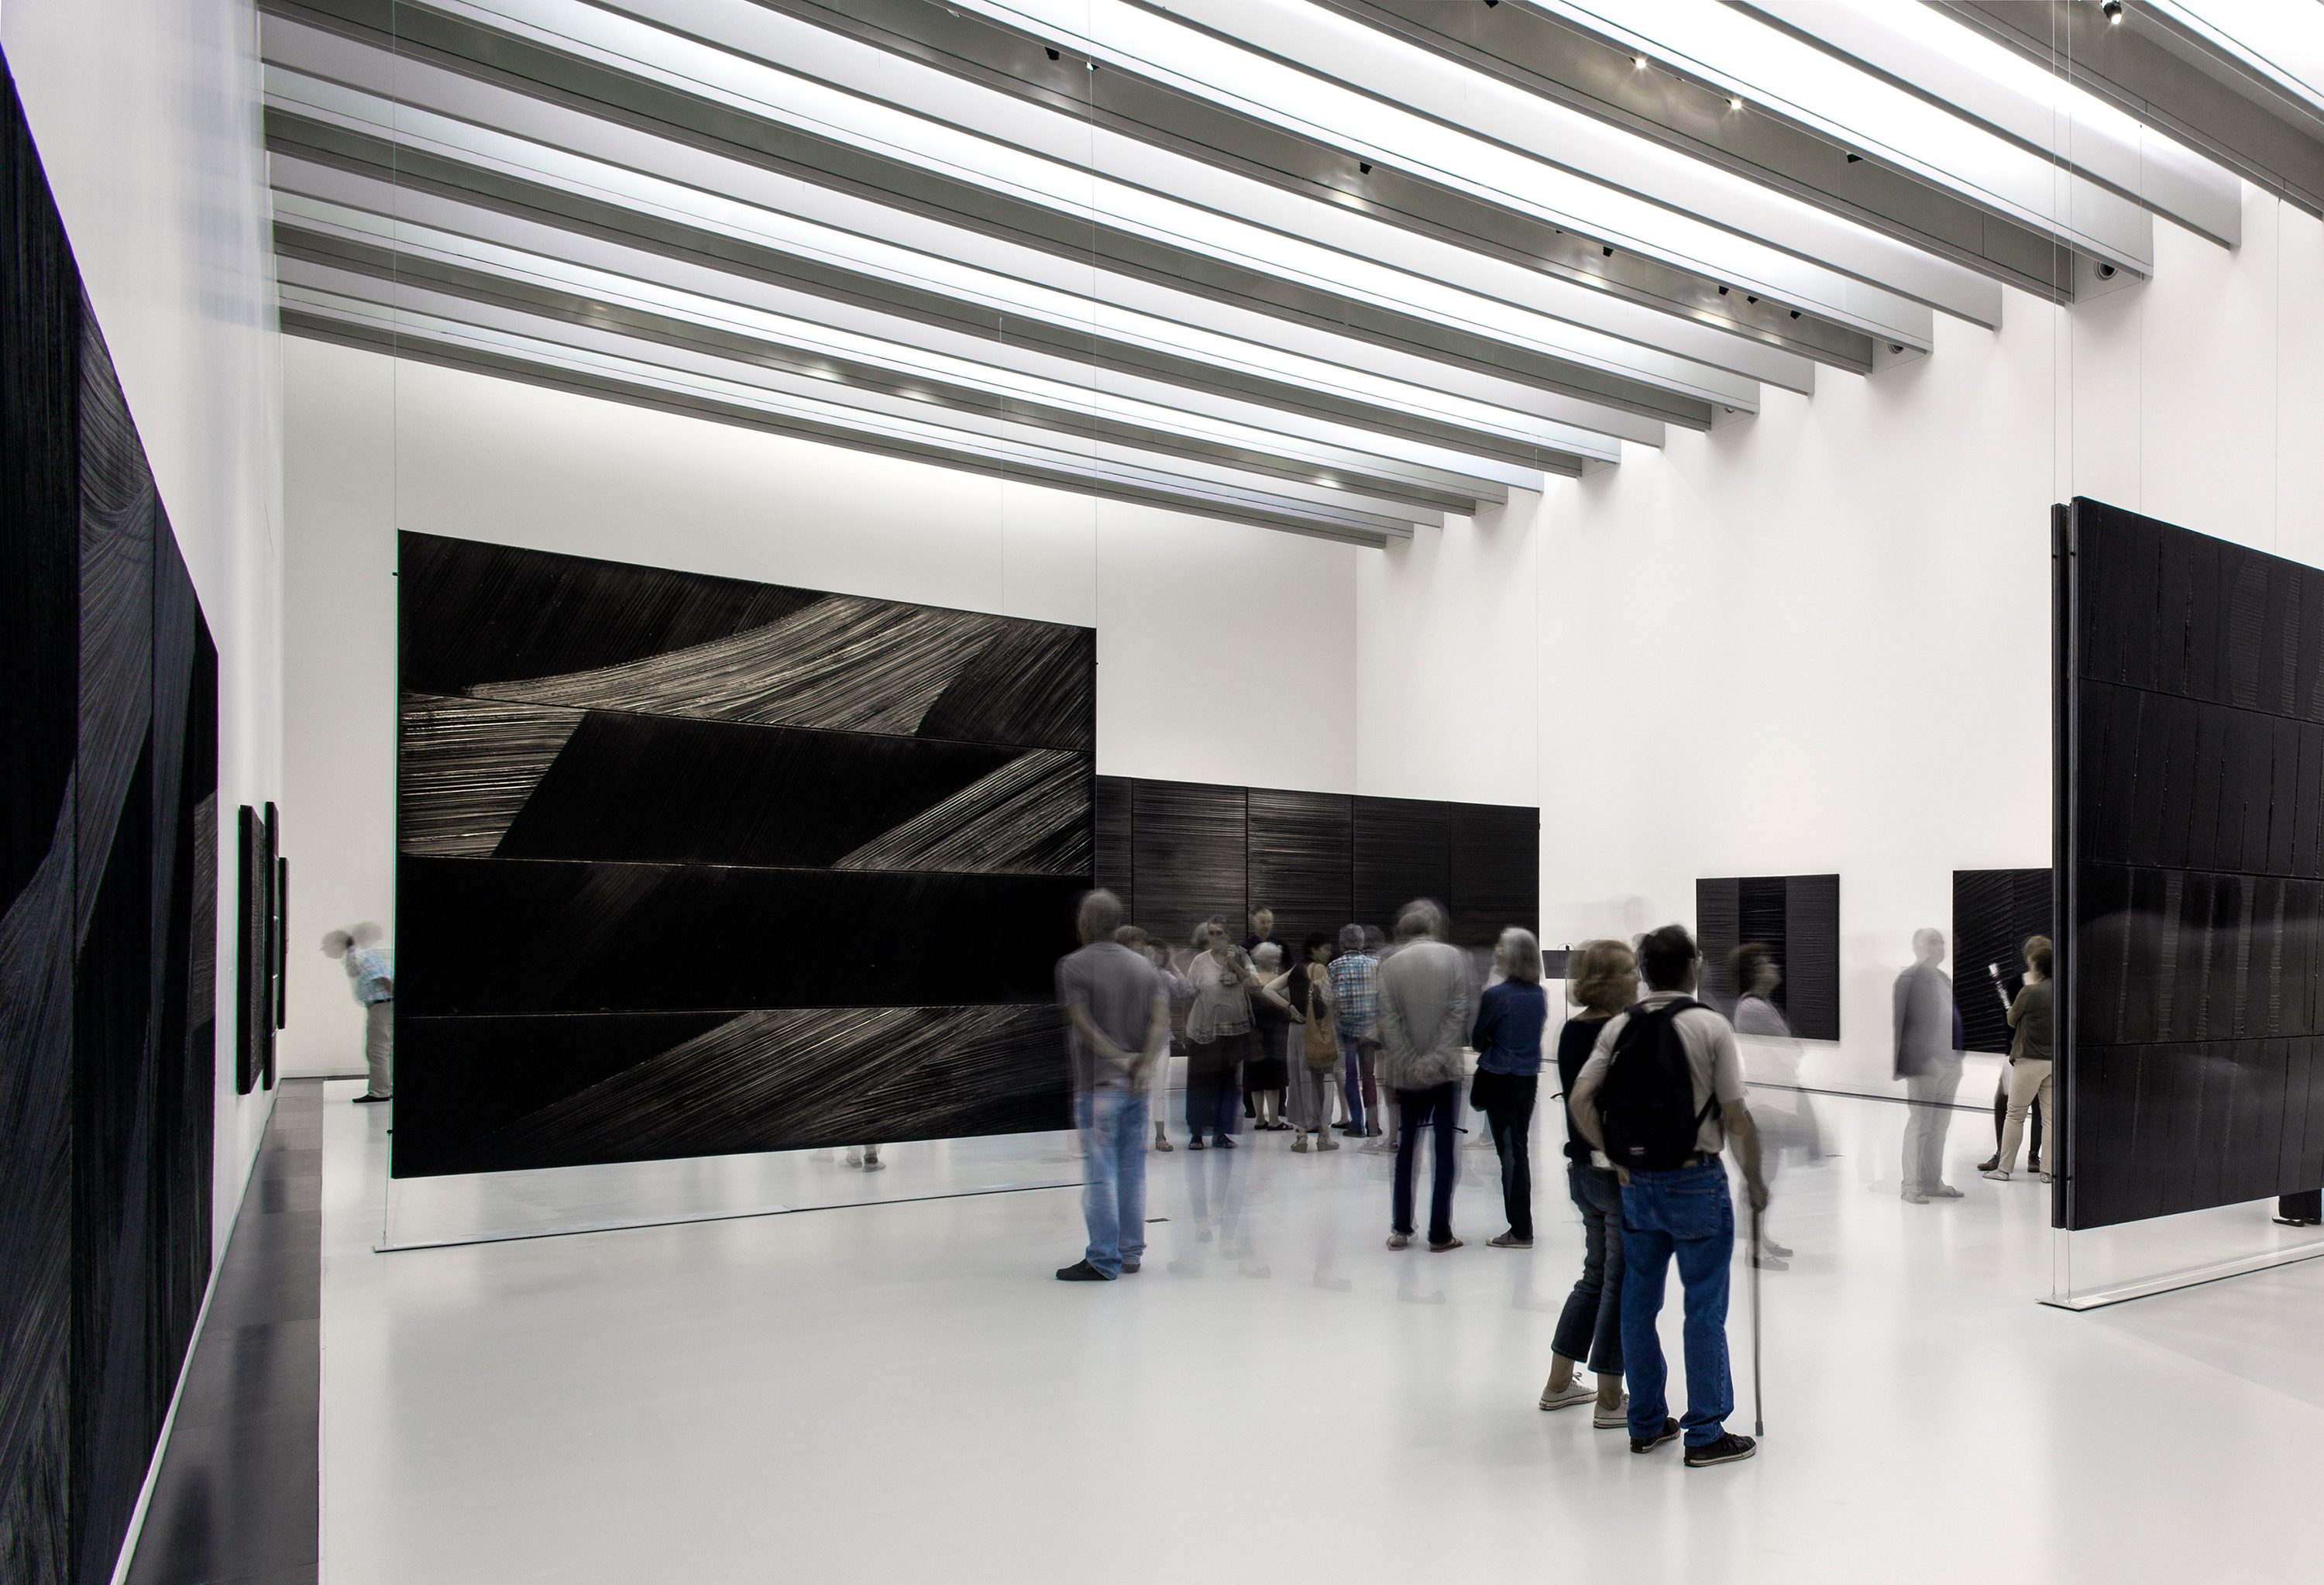 Soulages Museum, 2014, Rodez, France In collaboration with G. Trégouët